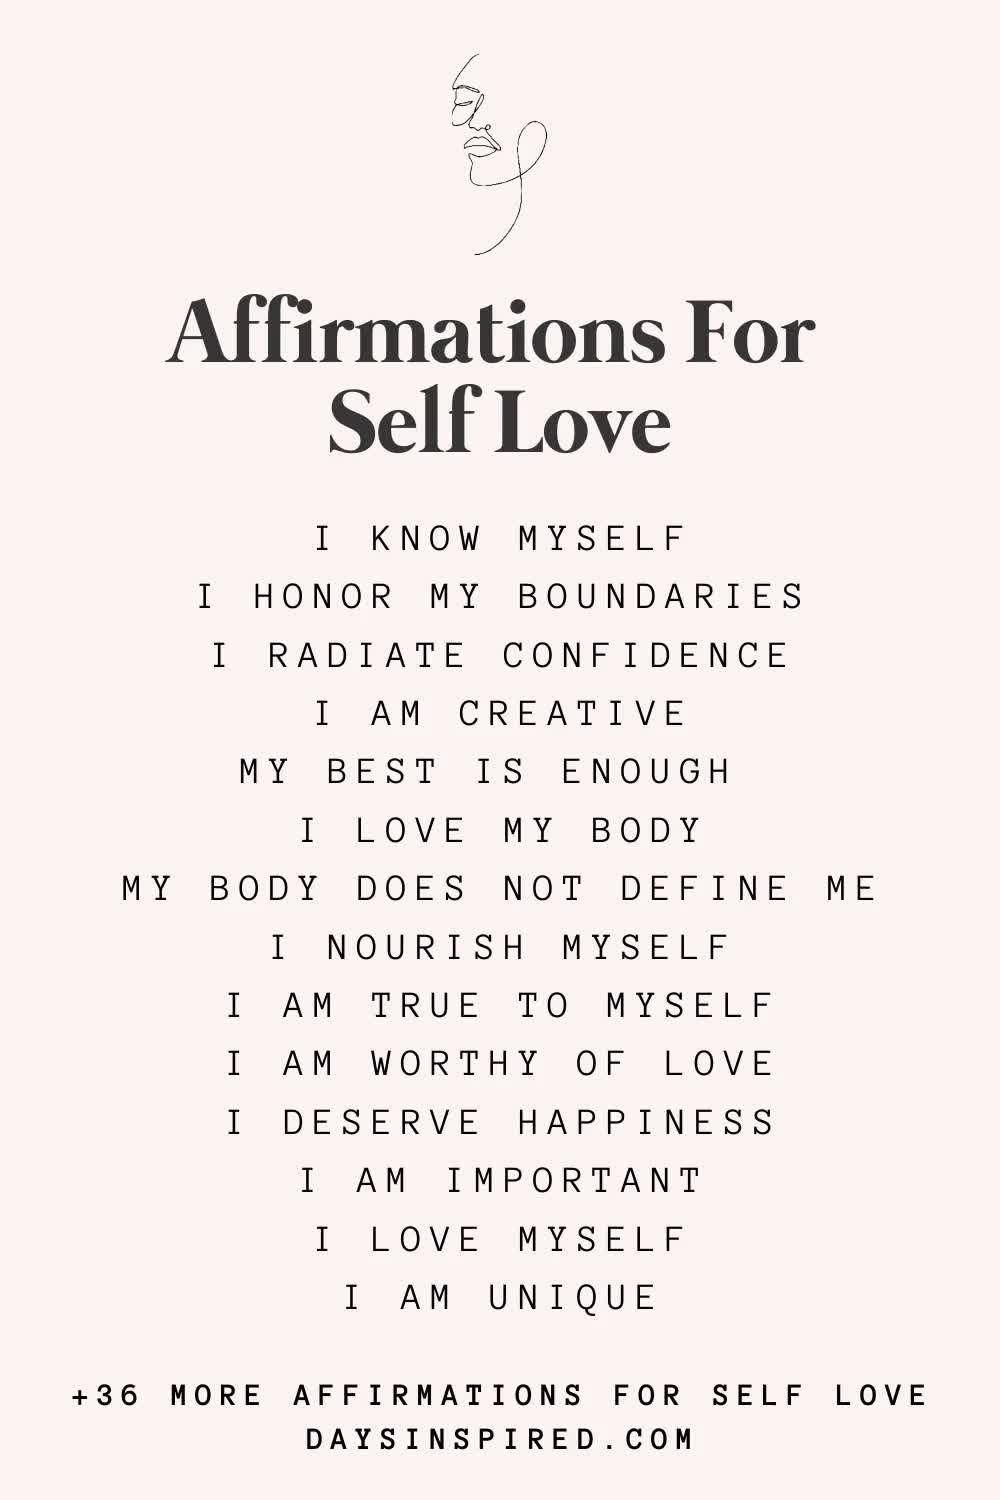 50 Affirmations for Self Love & How to Use Them - Days Inspired